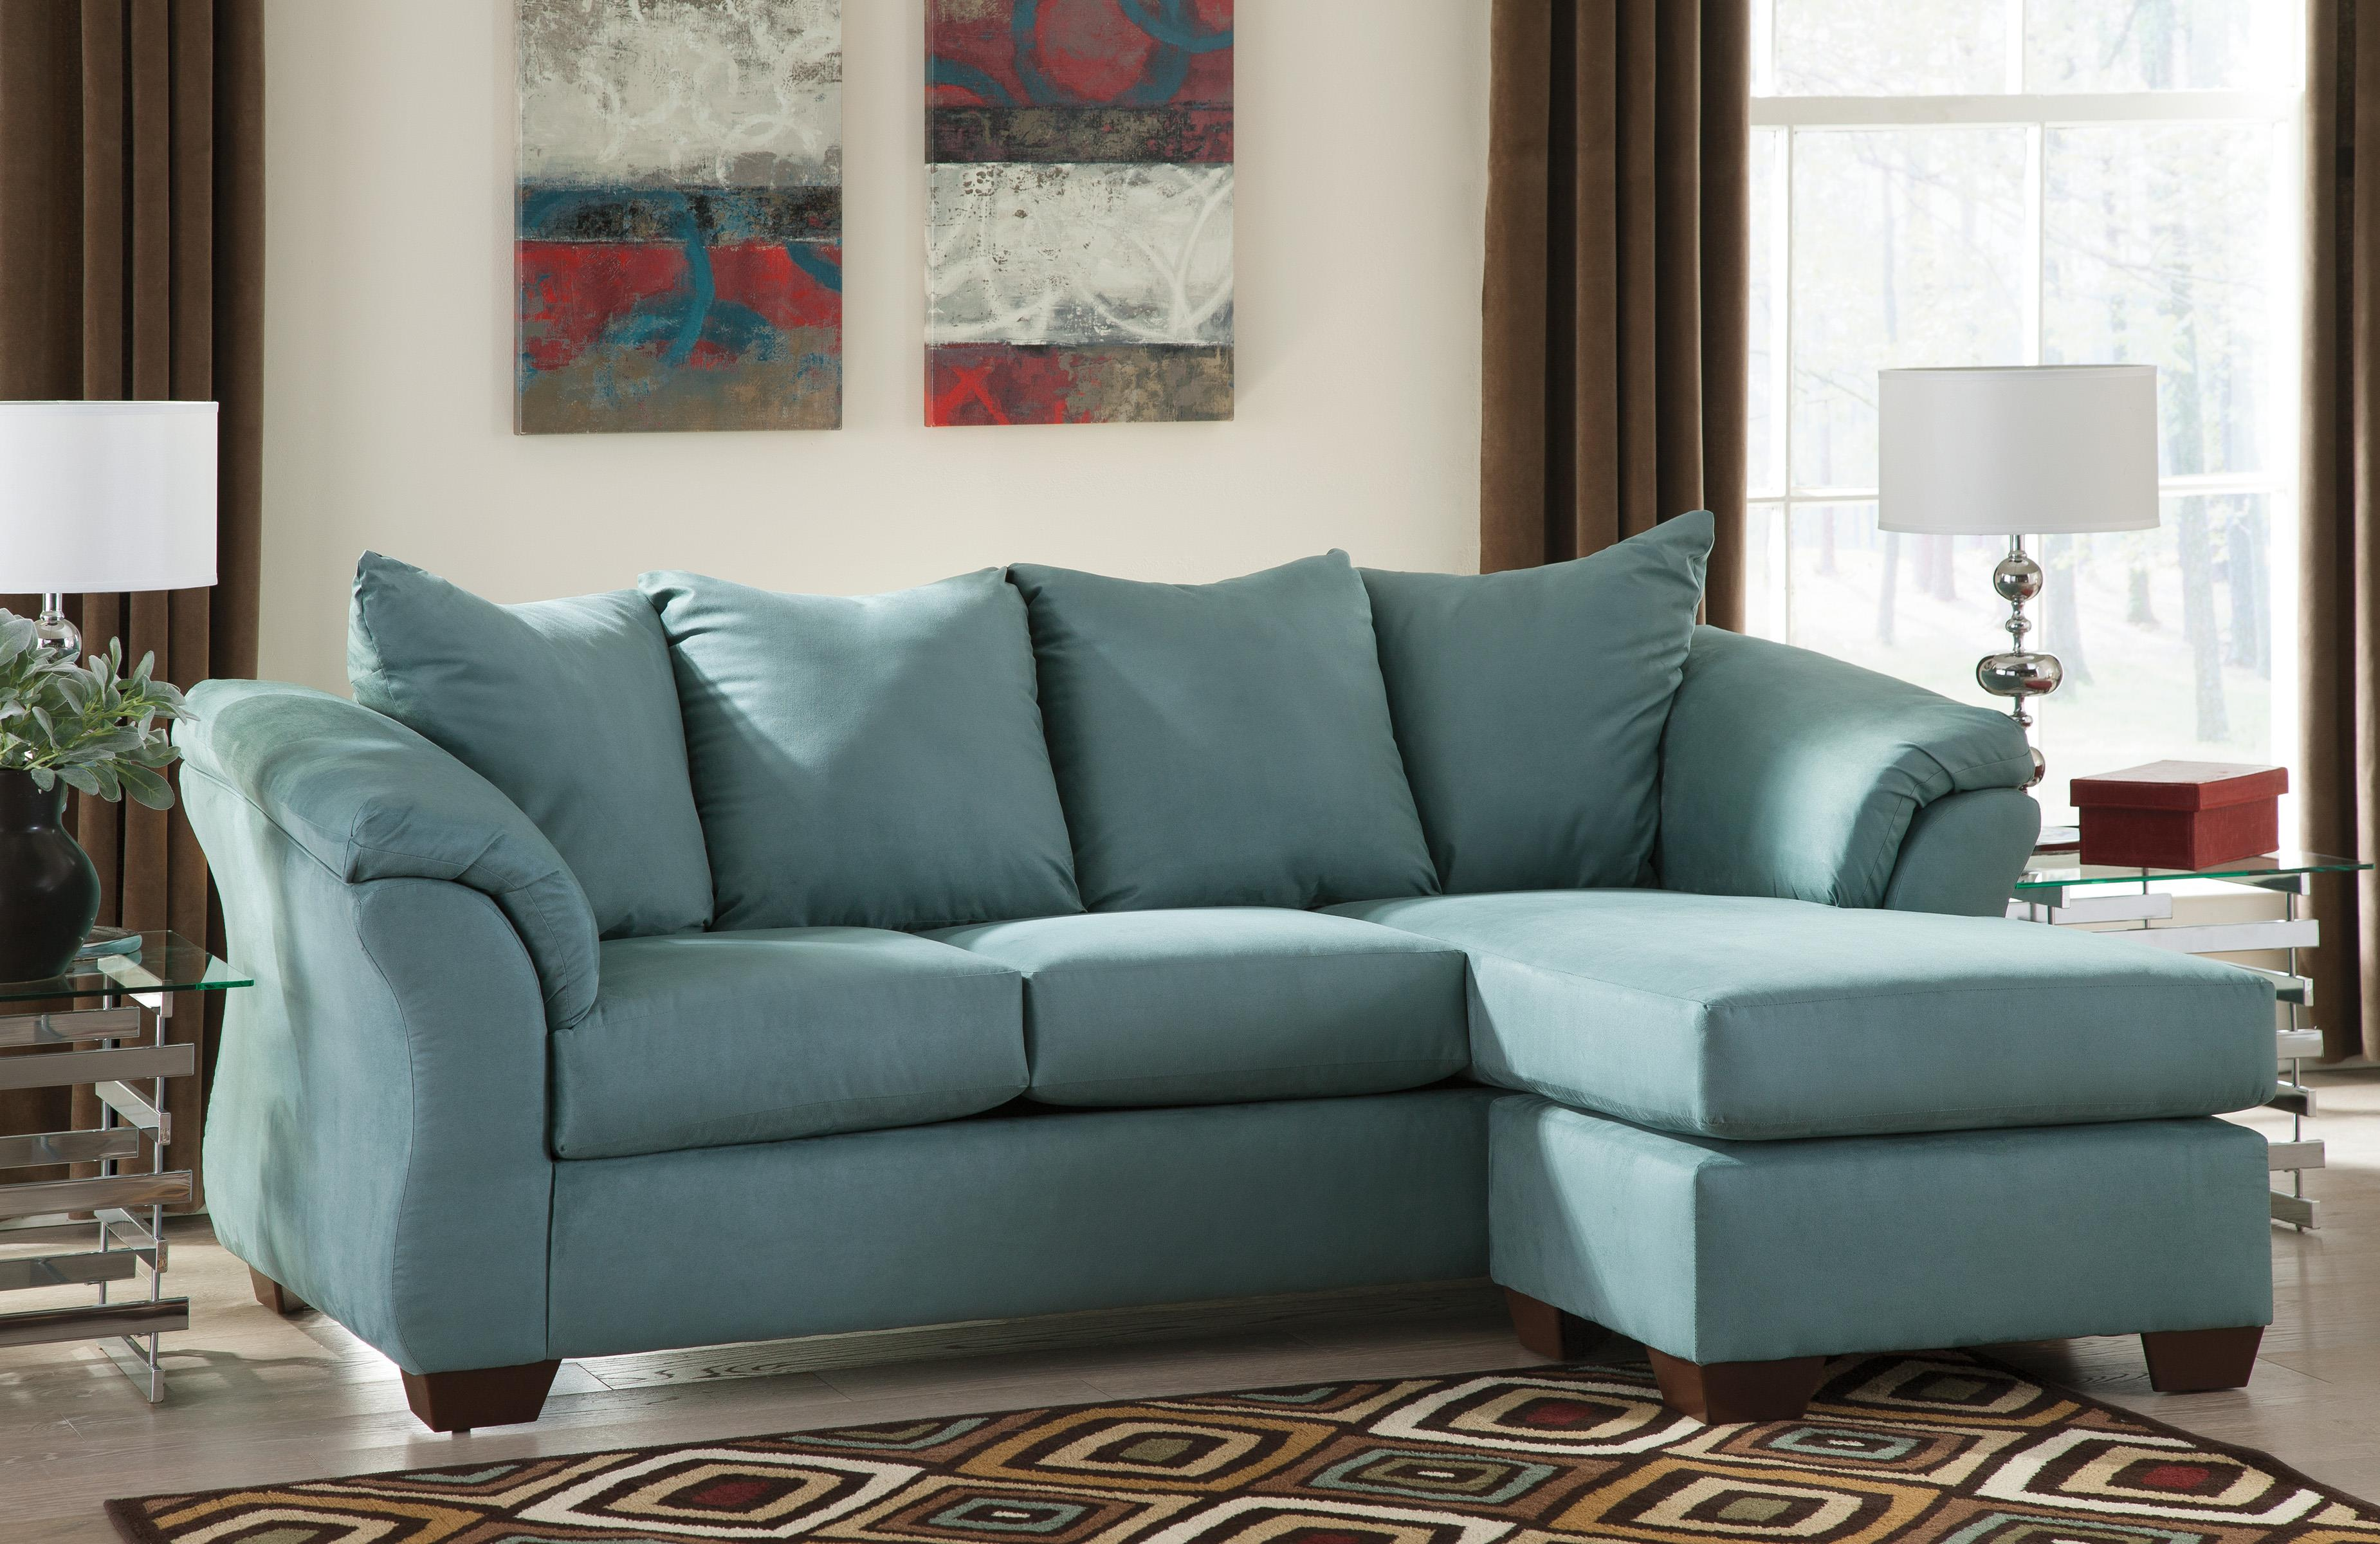 Signature design by ashley darcy sky 7500618 for Stratford home pillows living room furniture